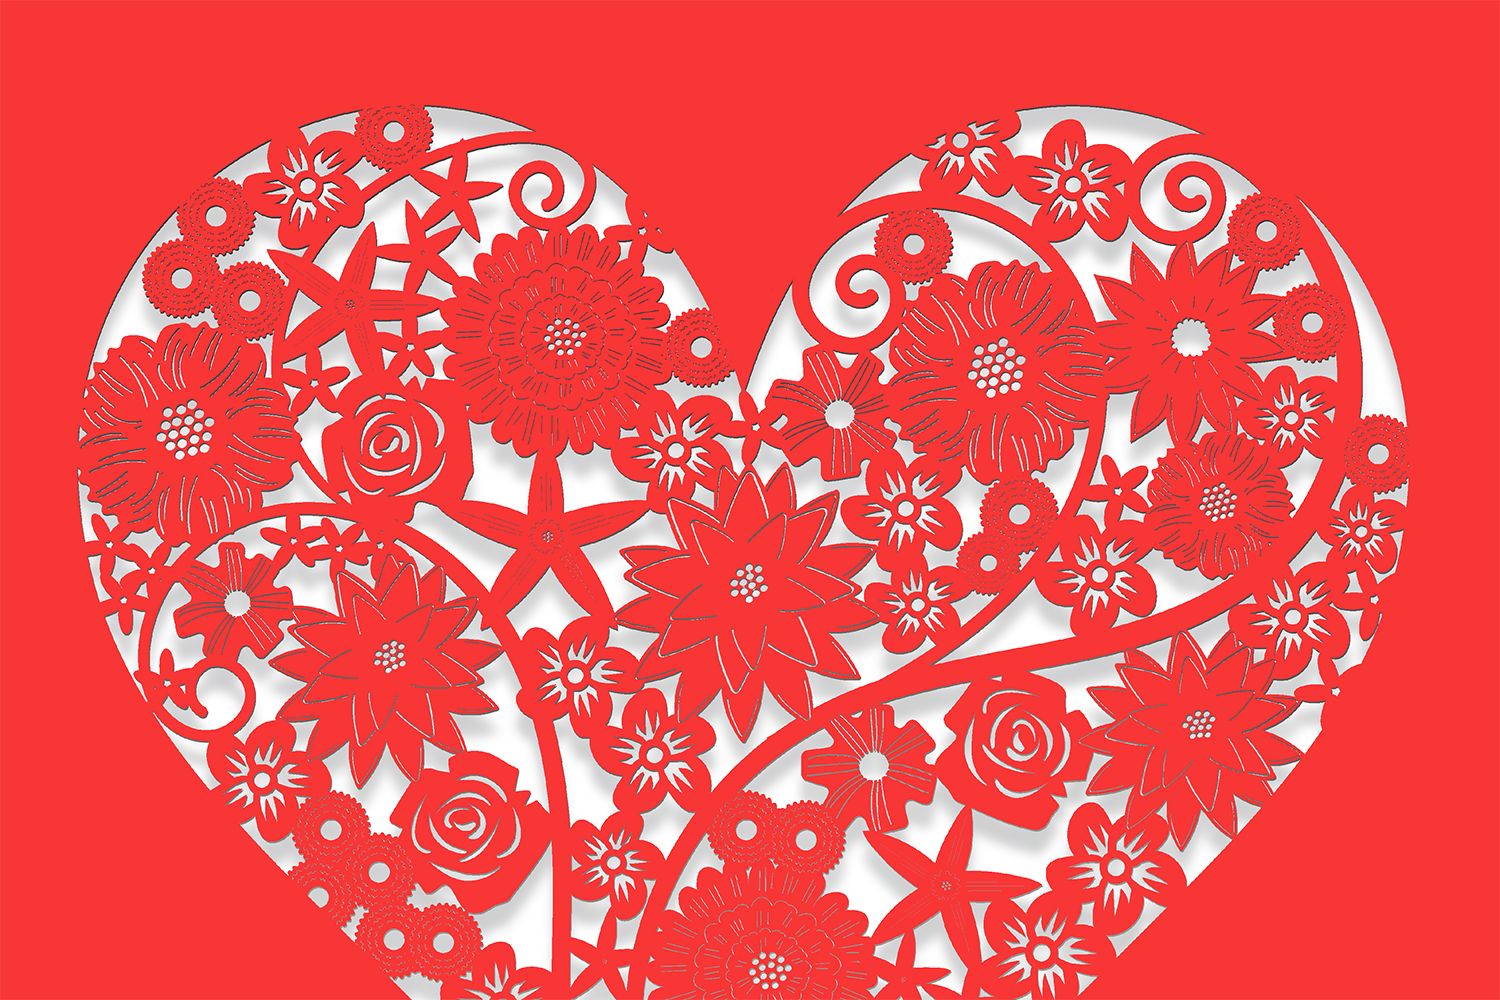 Ten Decorative Heart Cut Out Design 1 example image 3